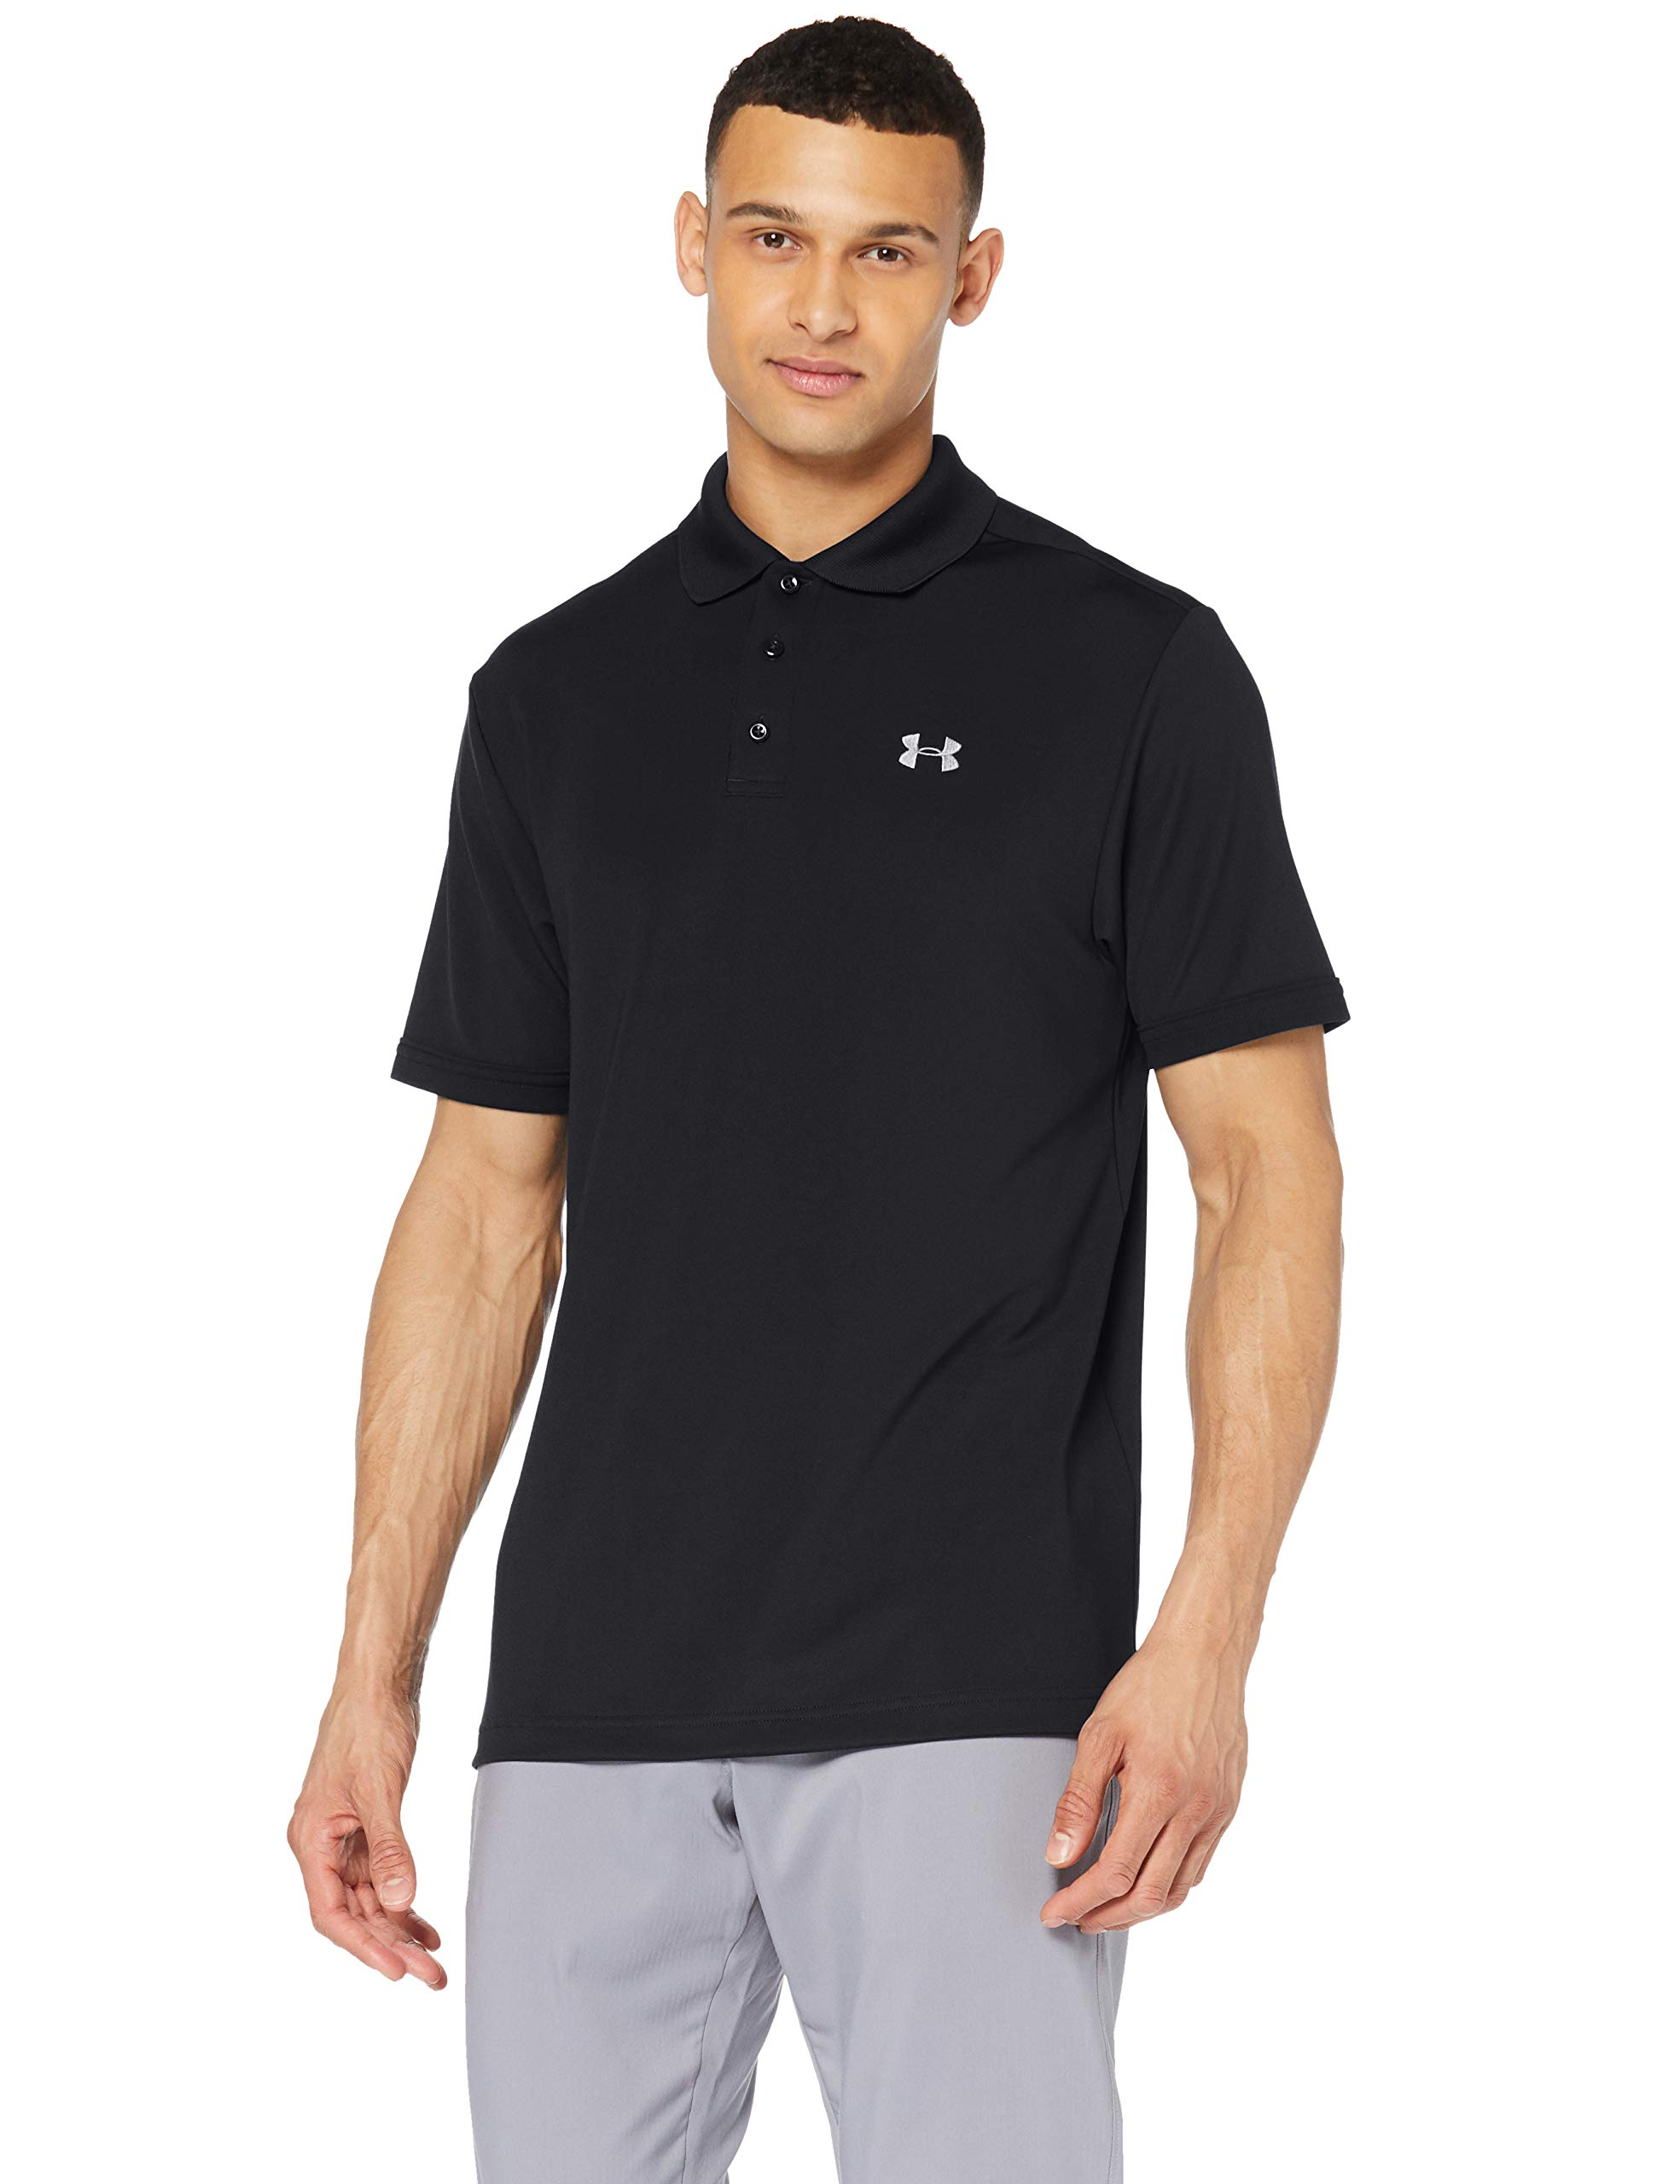 Under Armour Men's Performance Polo, Black (001)/Steel, X-Small